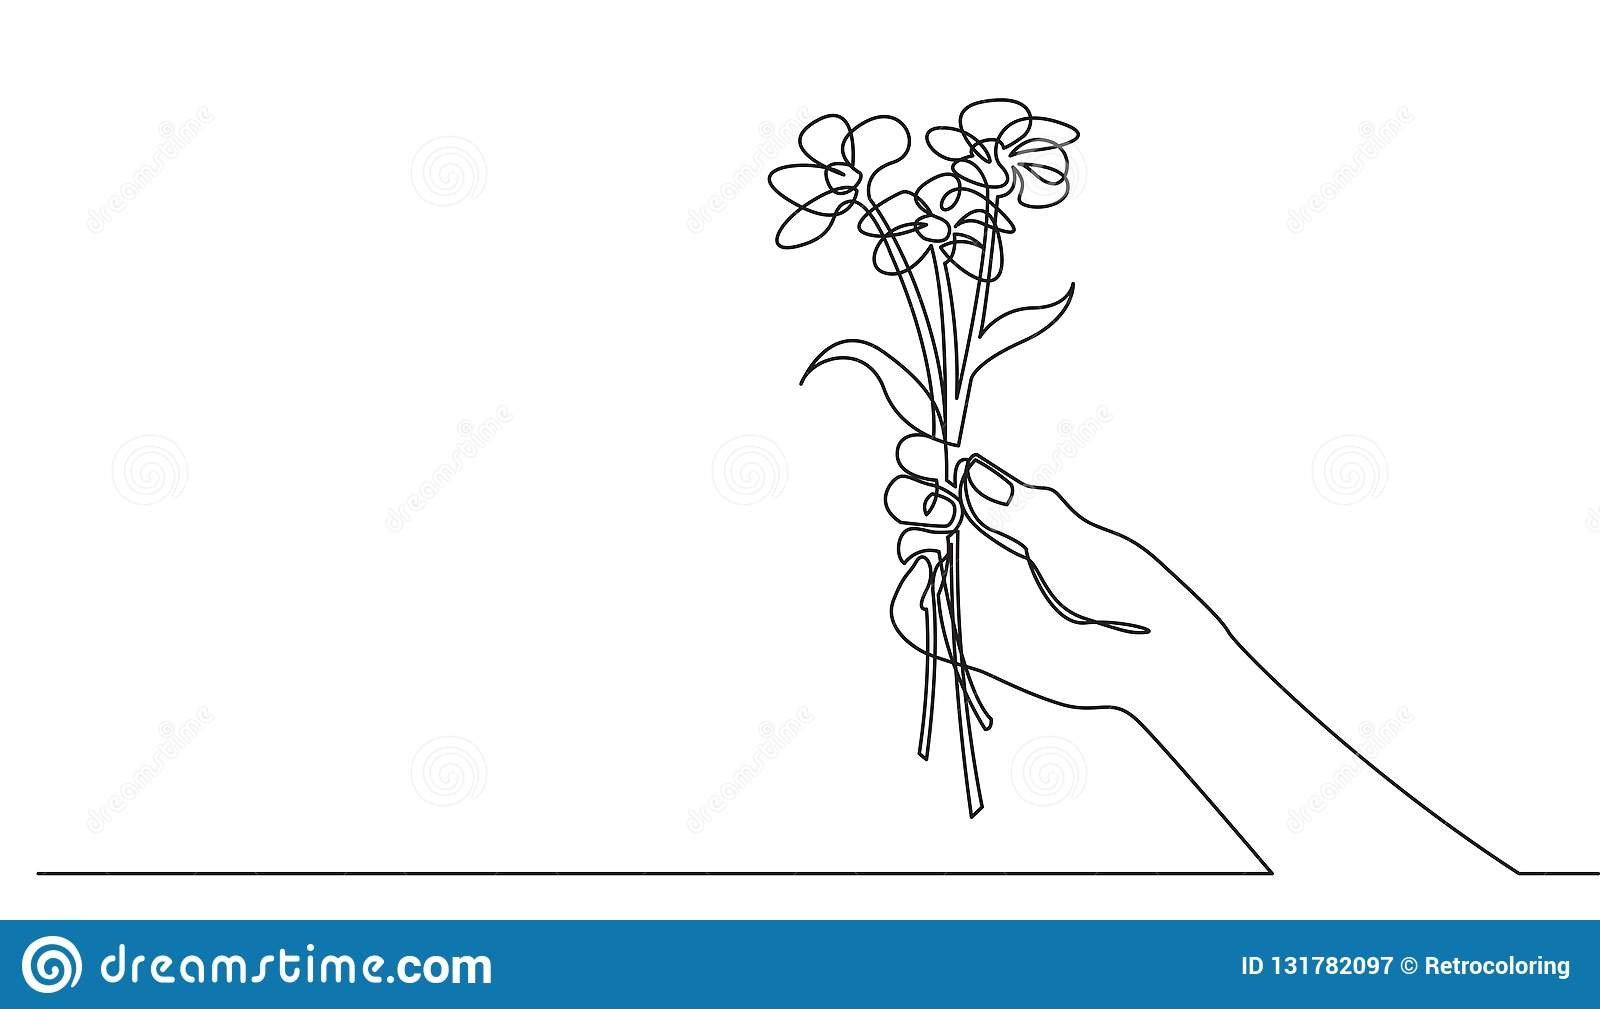 Continuous Line Drawing Of Hand Holding Flower Bouquet Stock